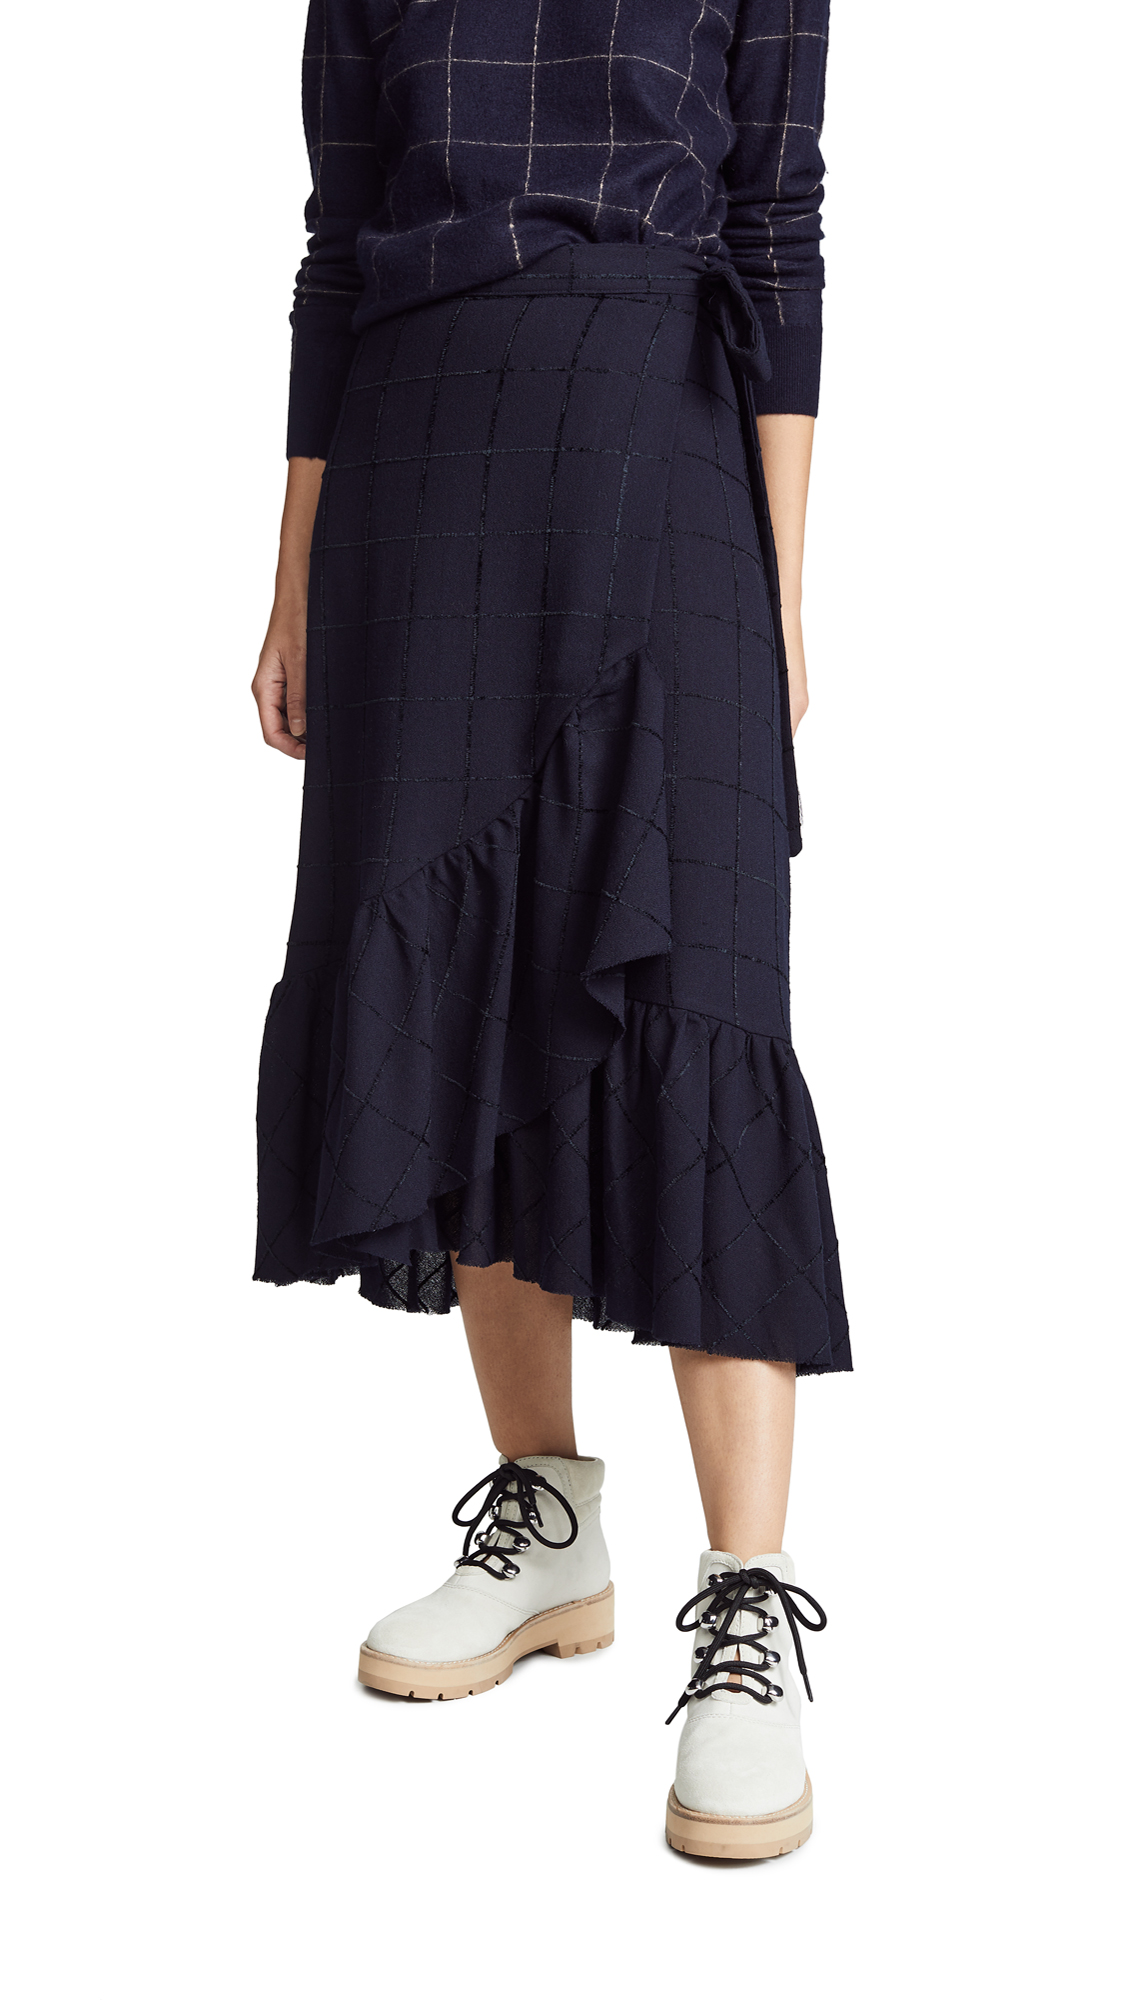 Otto d'ame Saetta Skirt In Blue